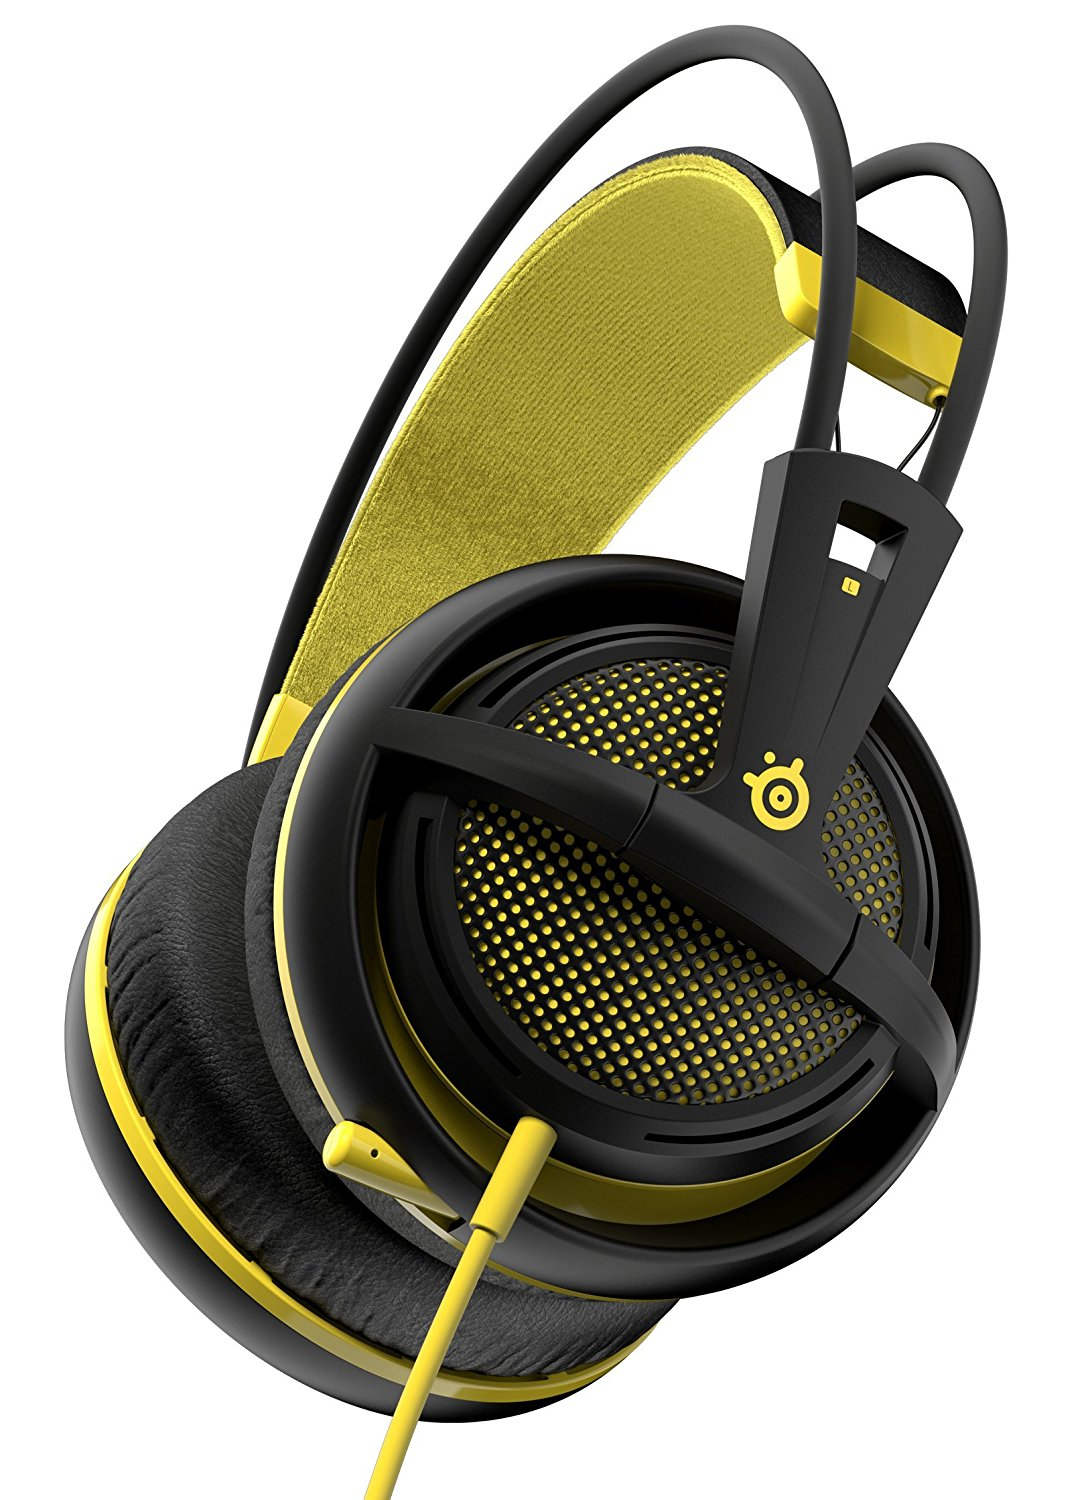 SteelSeries Siberia 200 (10-28kHz, 112dB, 50mm sperakers, 1.8m), USB, Dolby 7.1 Surround, Proton Yellow 1